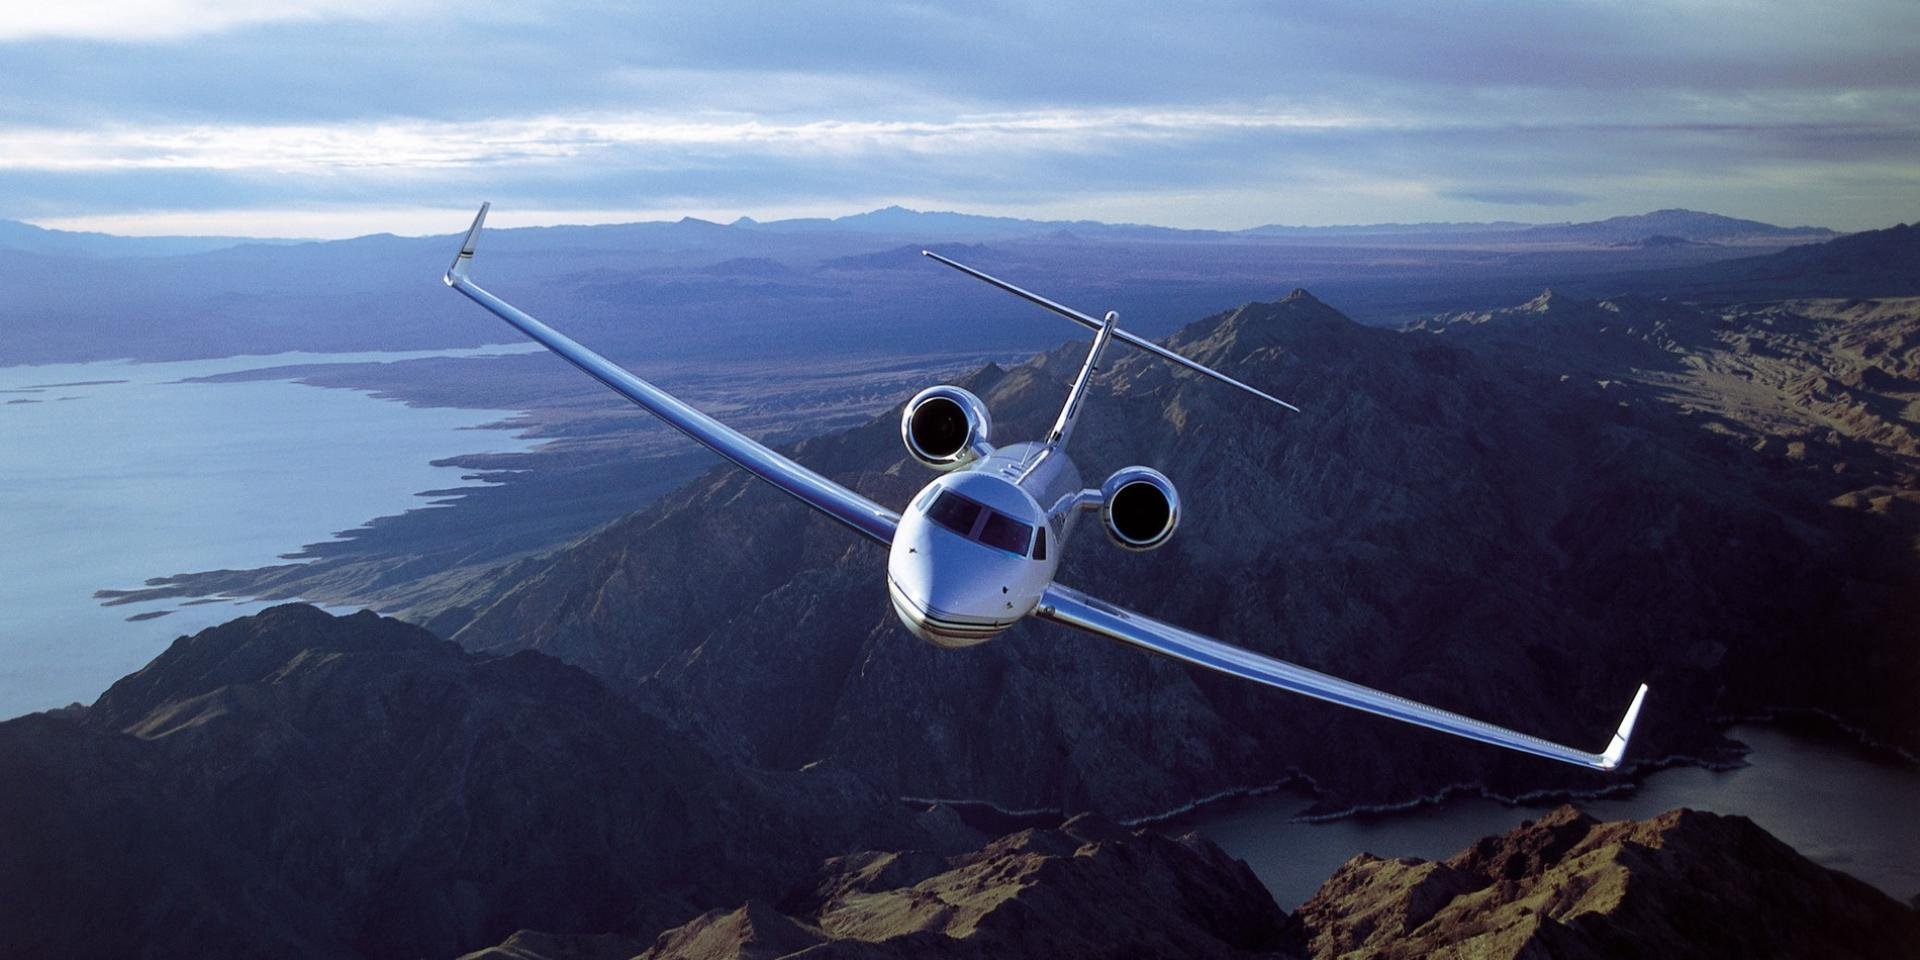 BOOK A PRIVATE JET